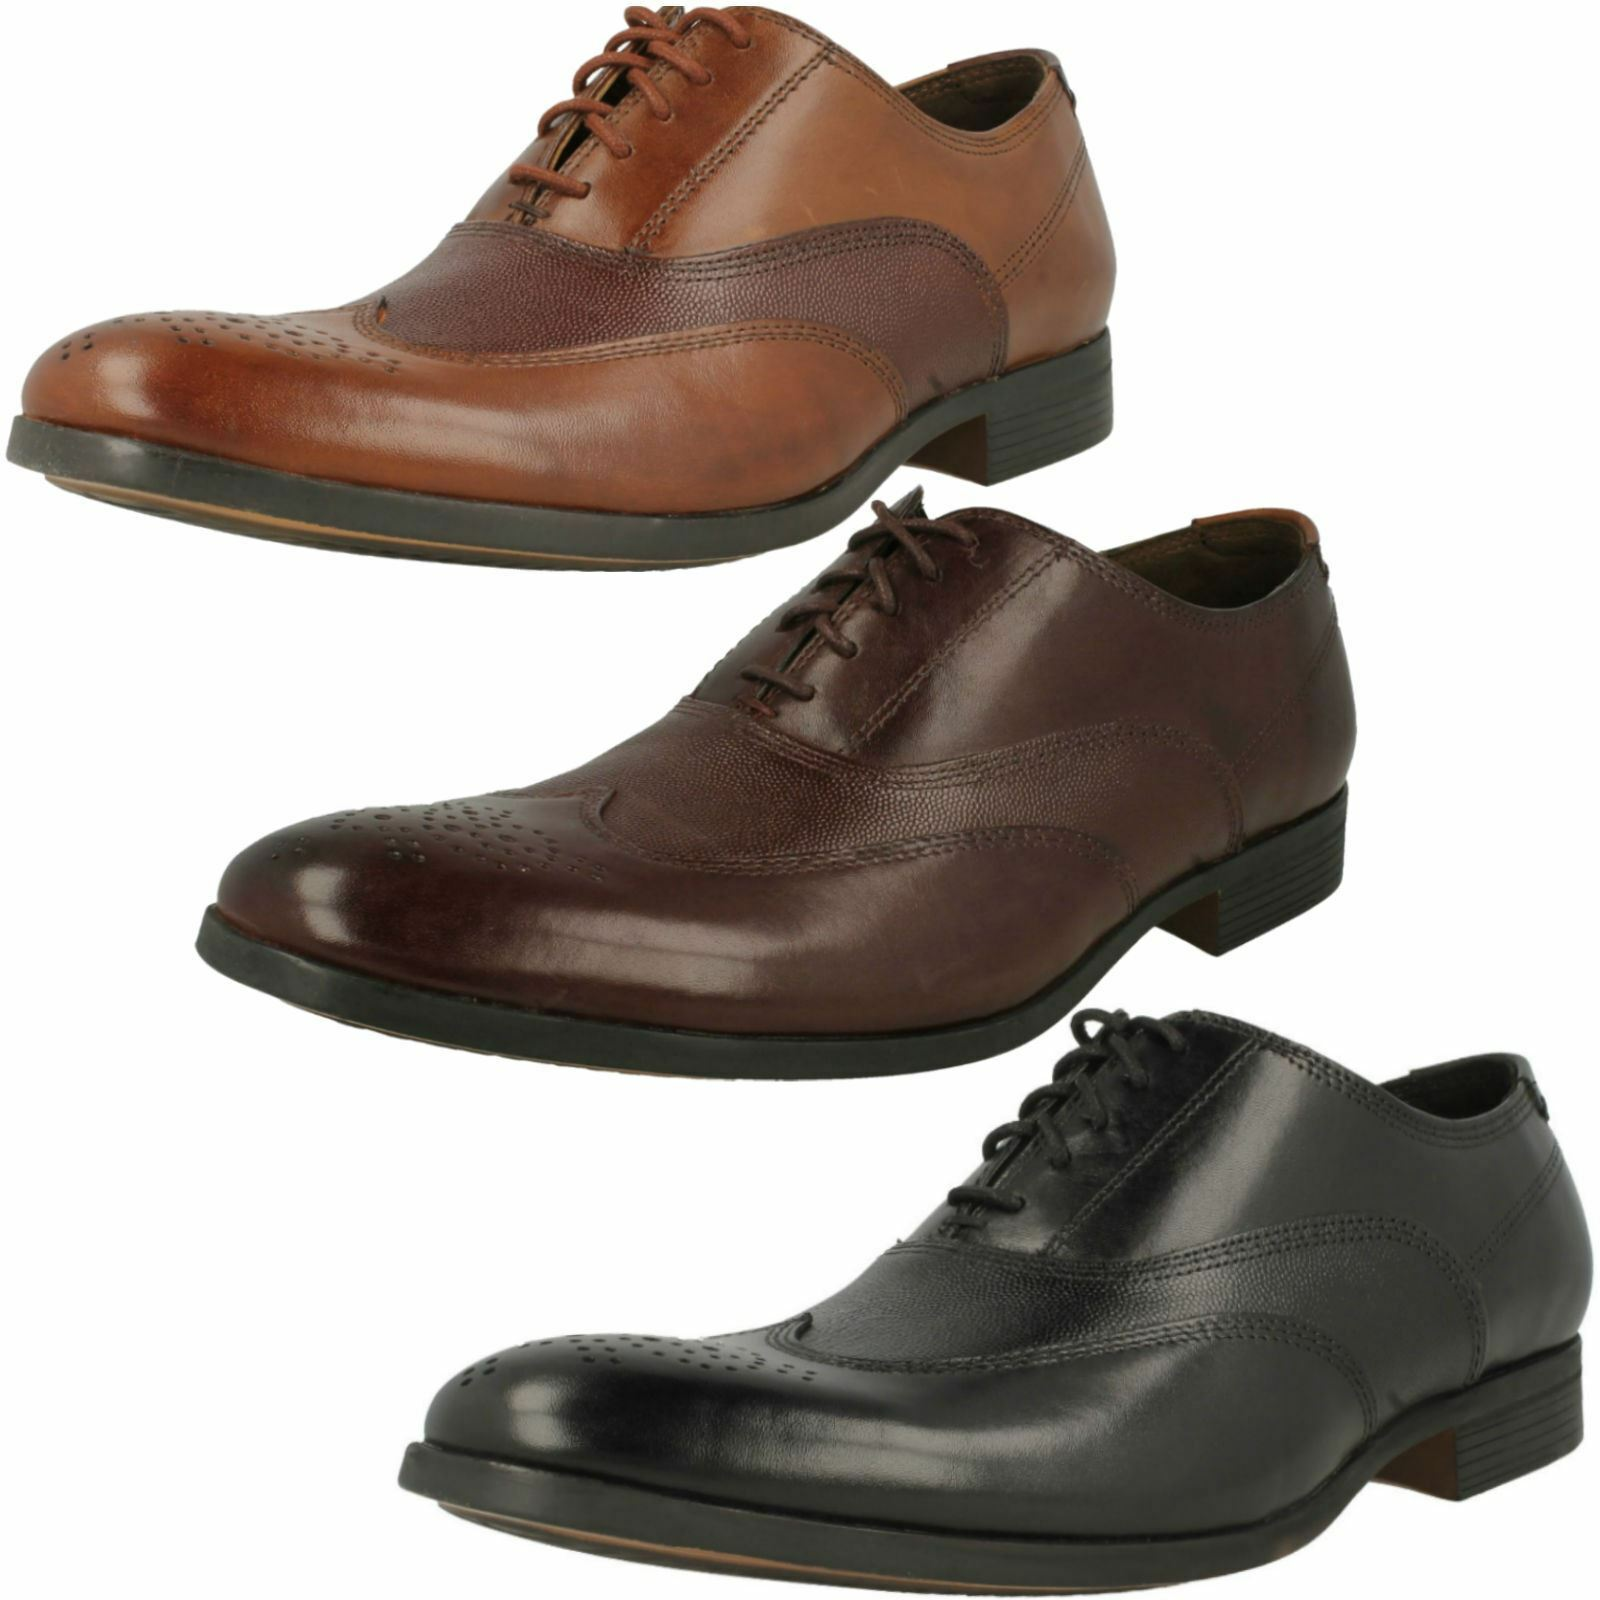 Uomo Clarks Lace-Up Brogue Wing Detailed Schuhes Gilmore Wing Brogue 506a86